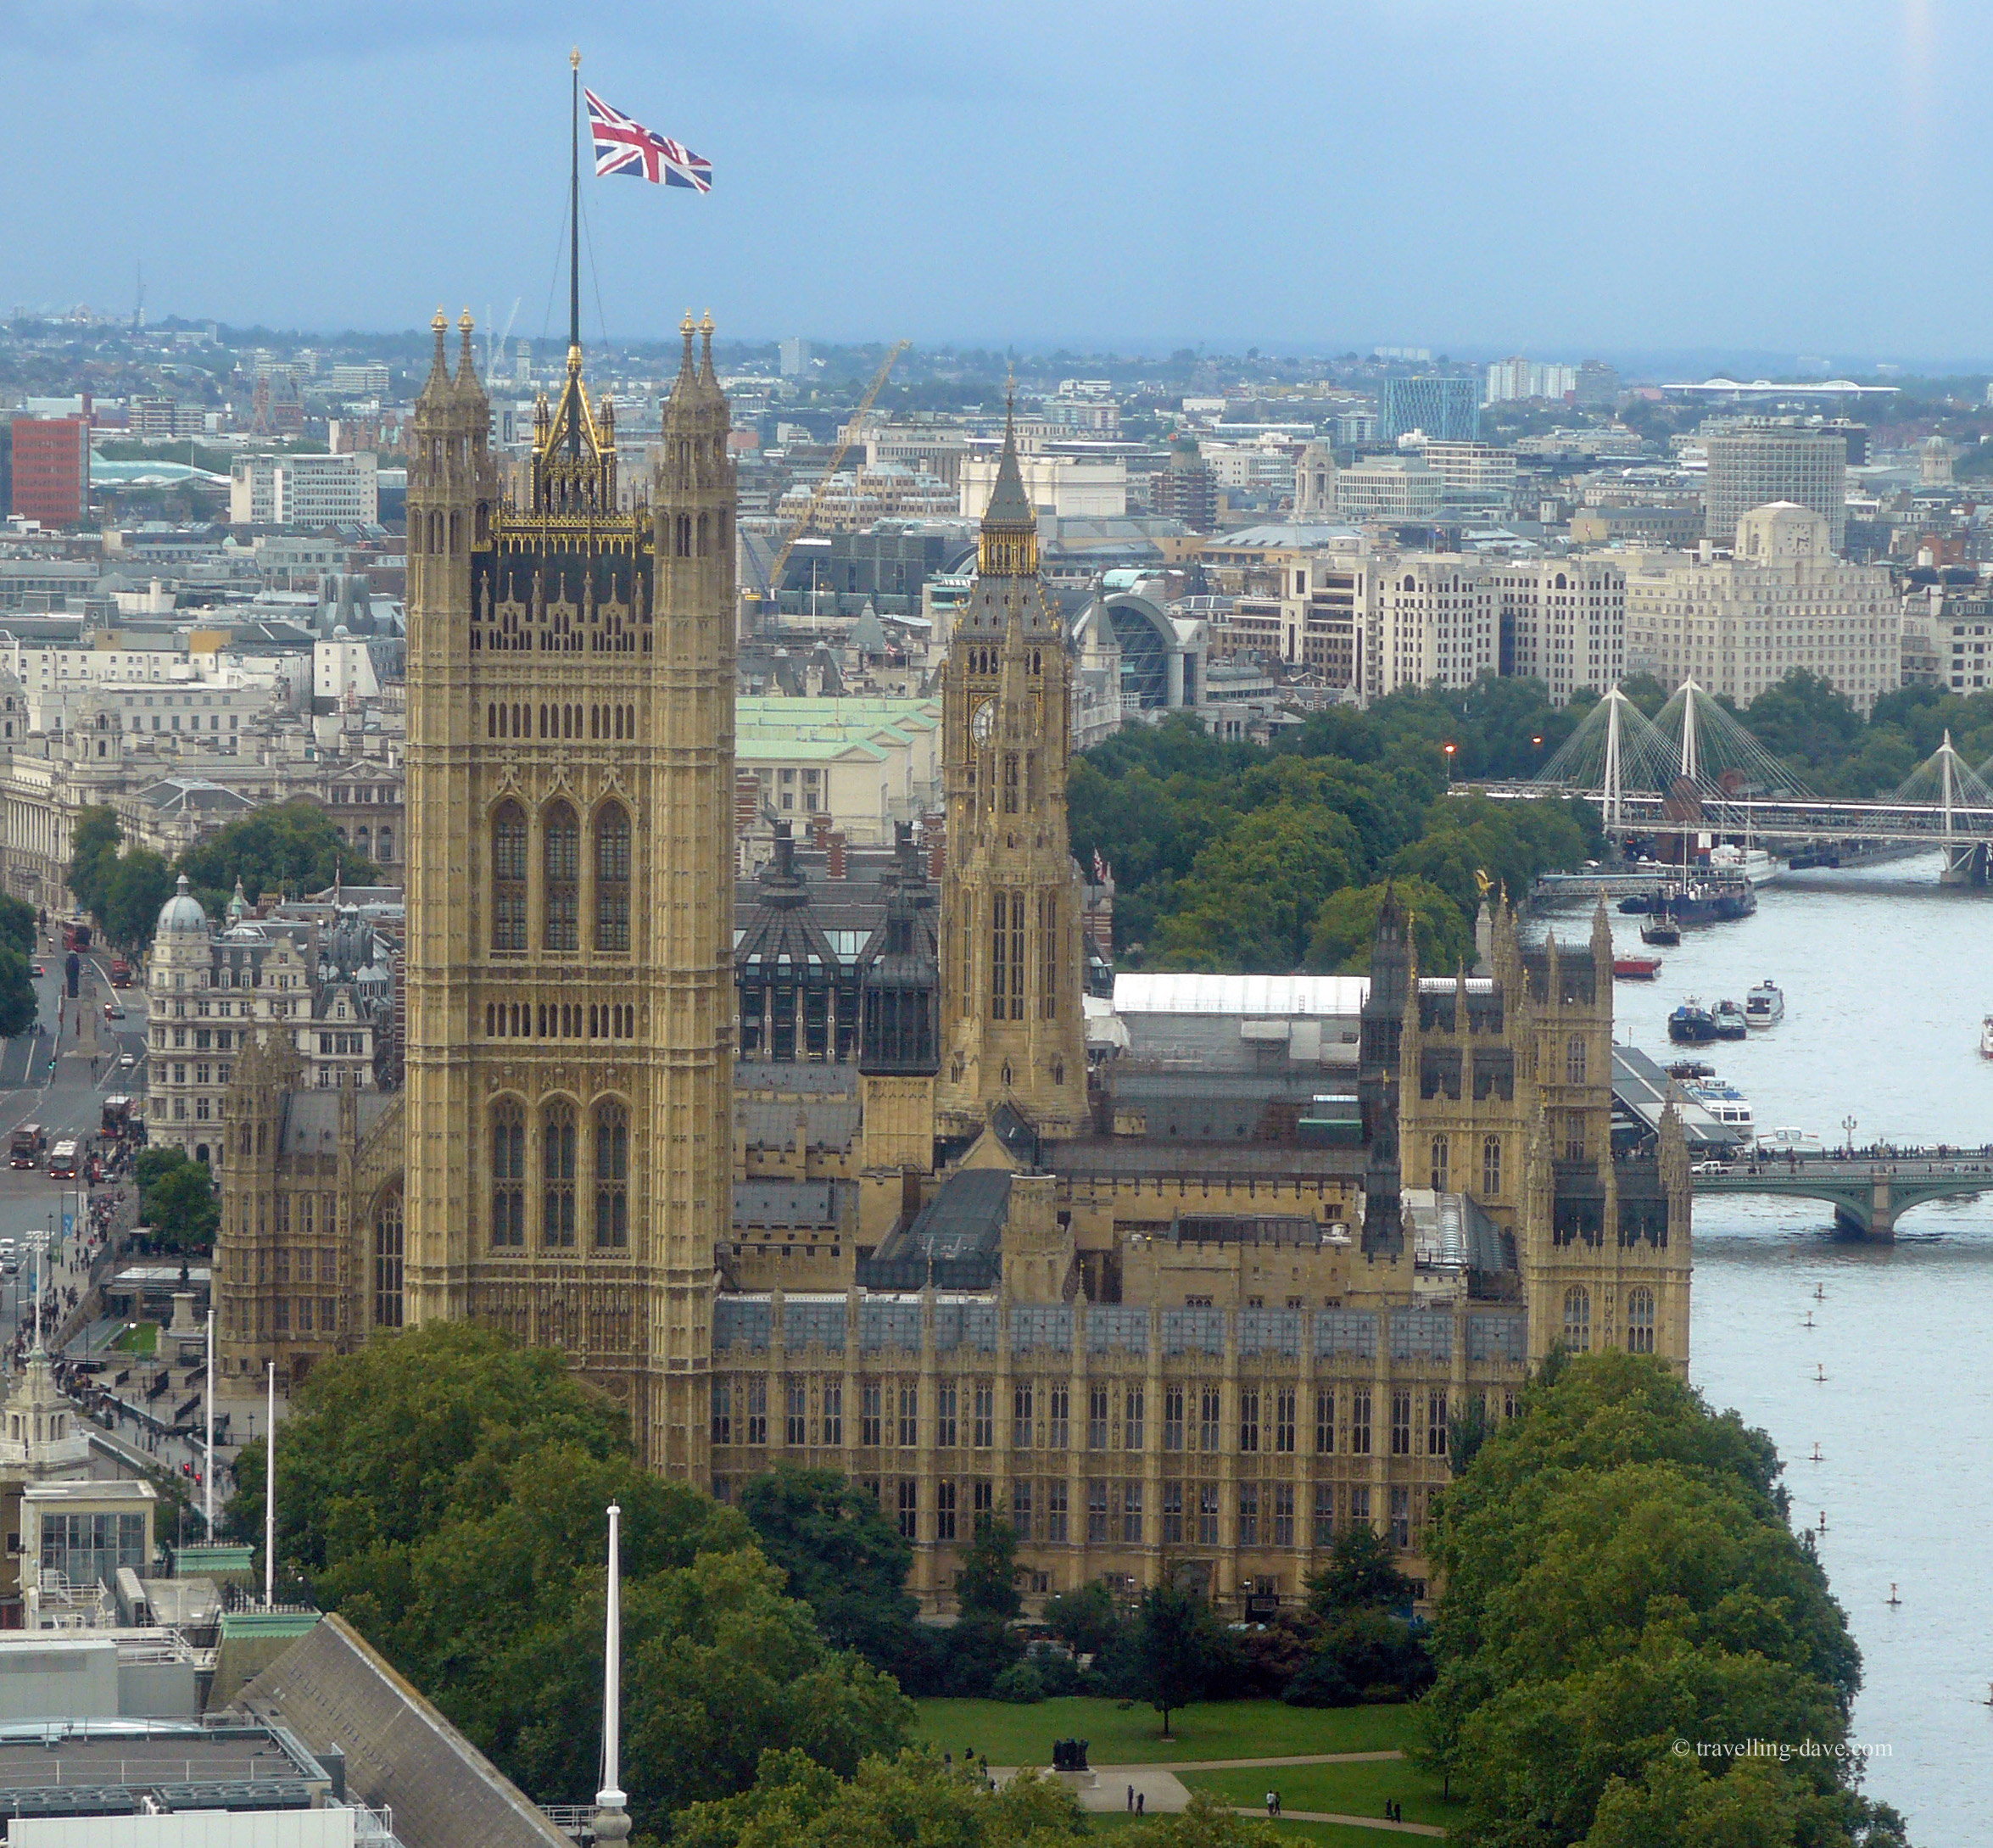 Aerial view of London's Houses of Parliament